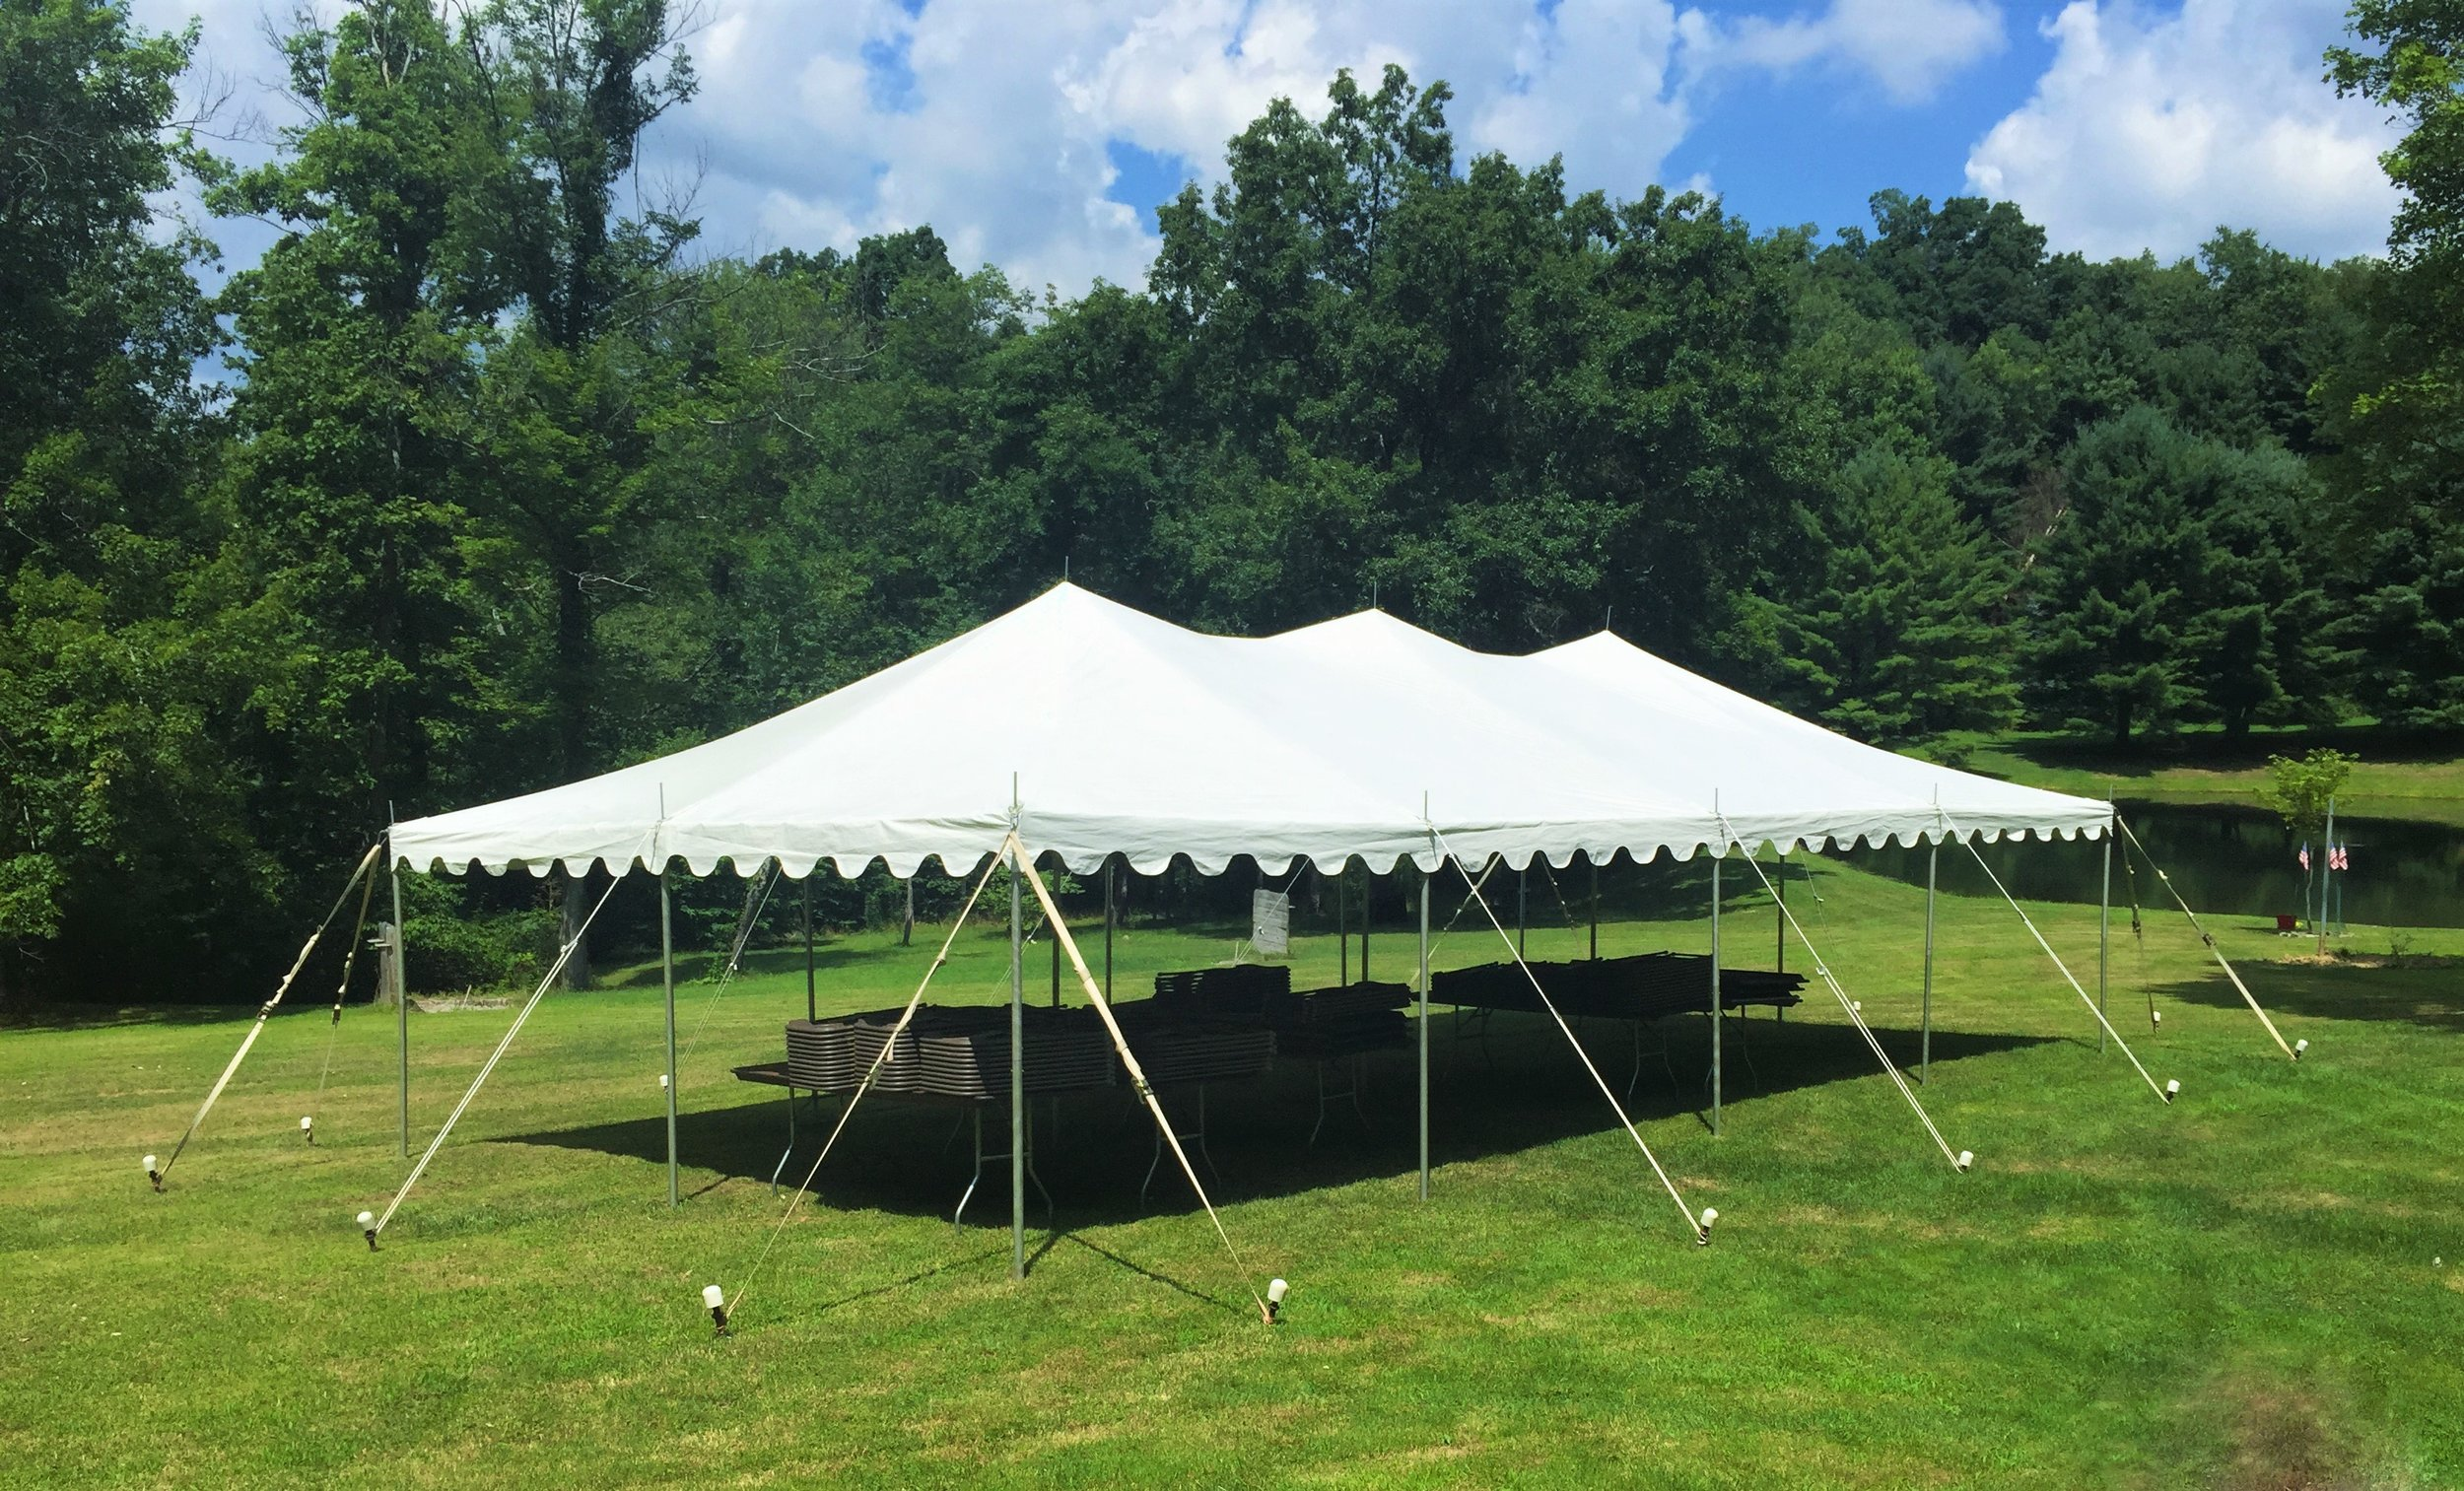 20' x 40' Canopy Tent